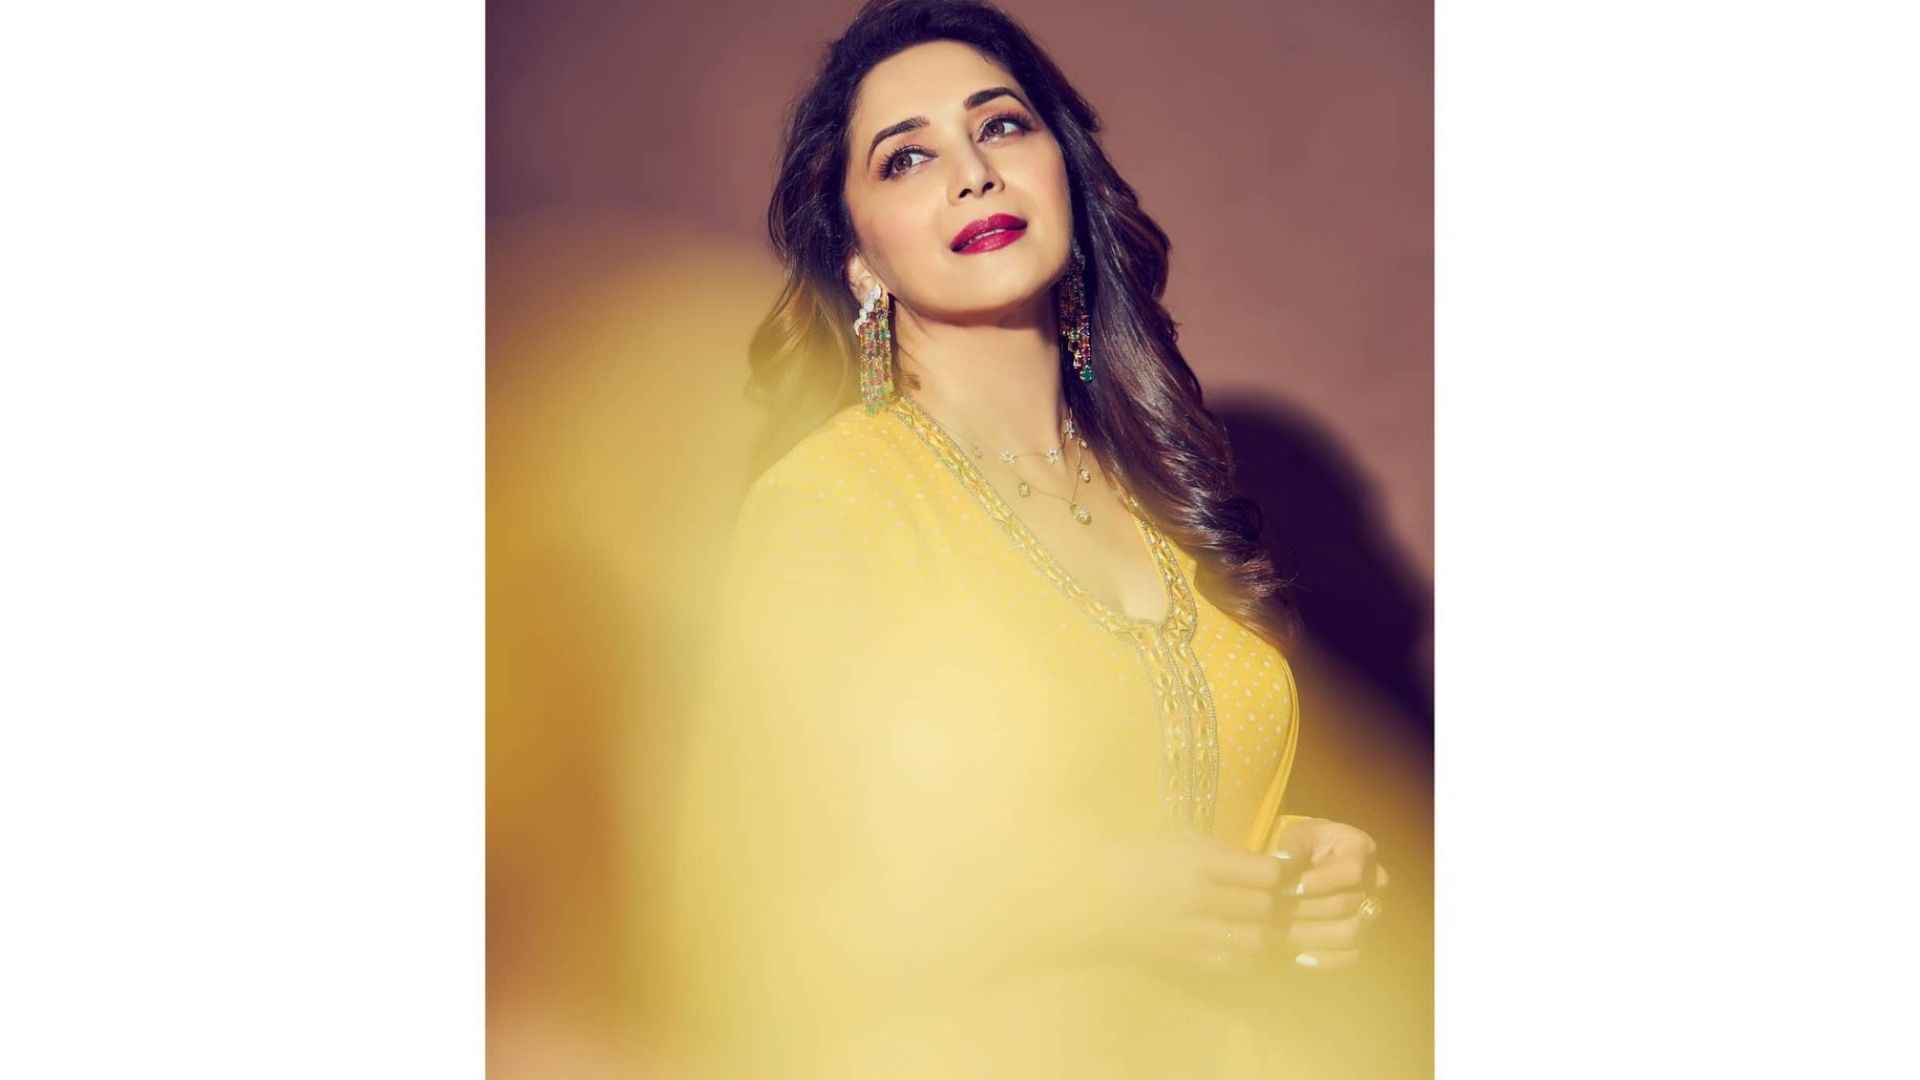 These Photos Of Madhuri Dixit Prove She Is The Ultimate Queen Of Bollywood